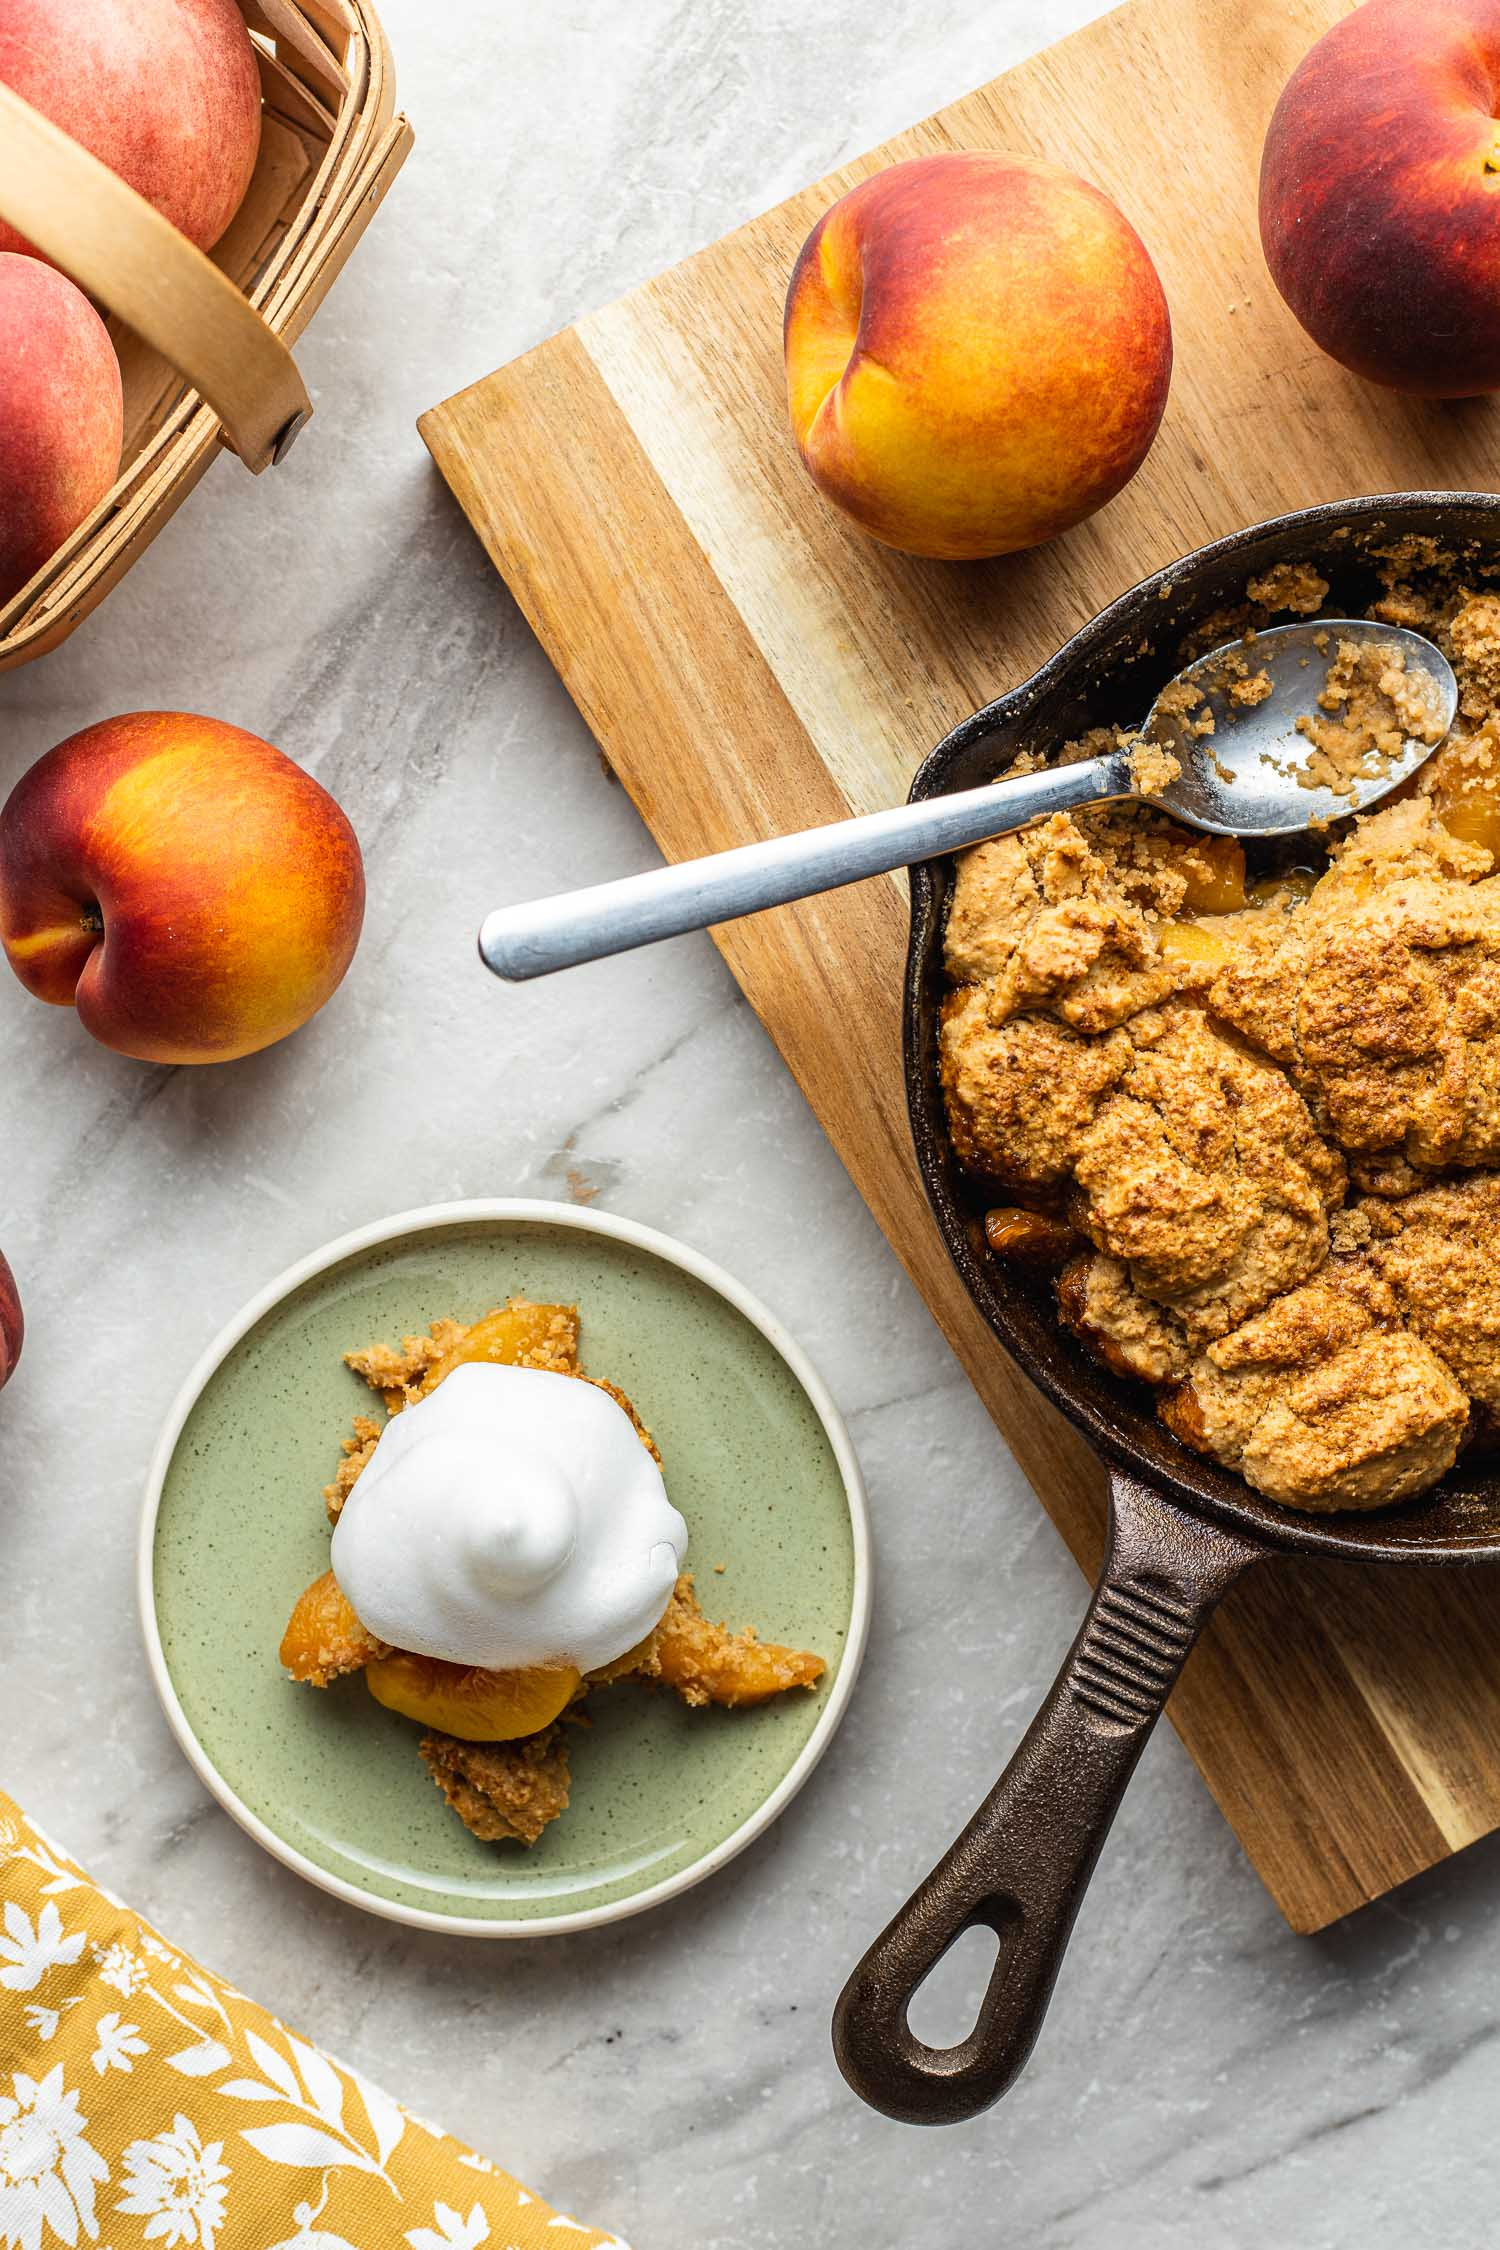 cooking and plating scene of peach cobbler cooked in an iron skillet with a serving plated to the left of the pan with peaches scattered about